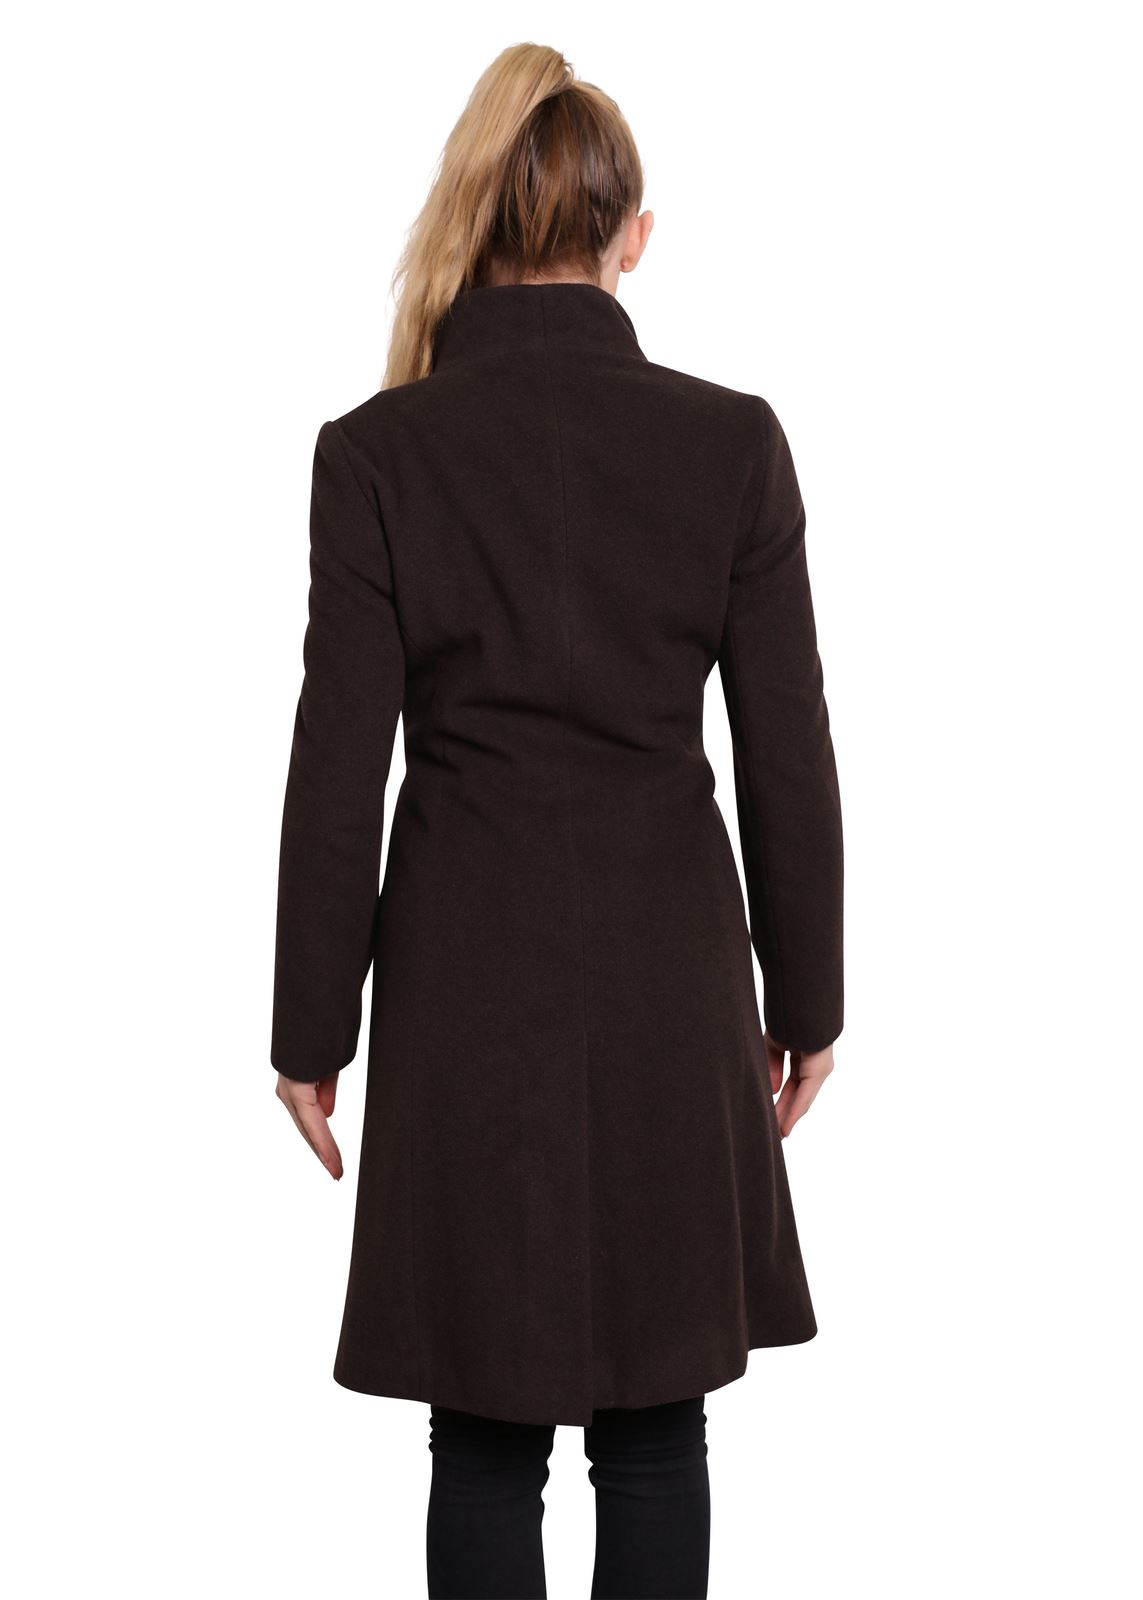 De-La-Creme-Womens-Funnel-Neck-Wool-amp-Cashmere-Blend-Keep-It-Simple-Coat thumbnail 9